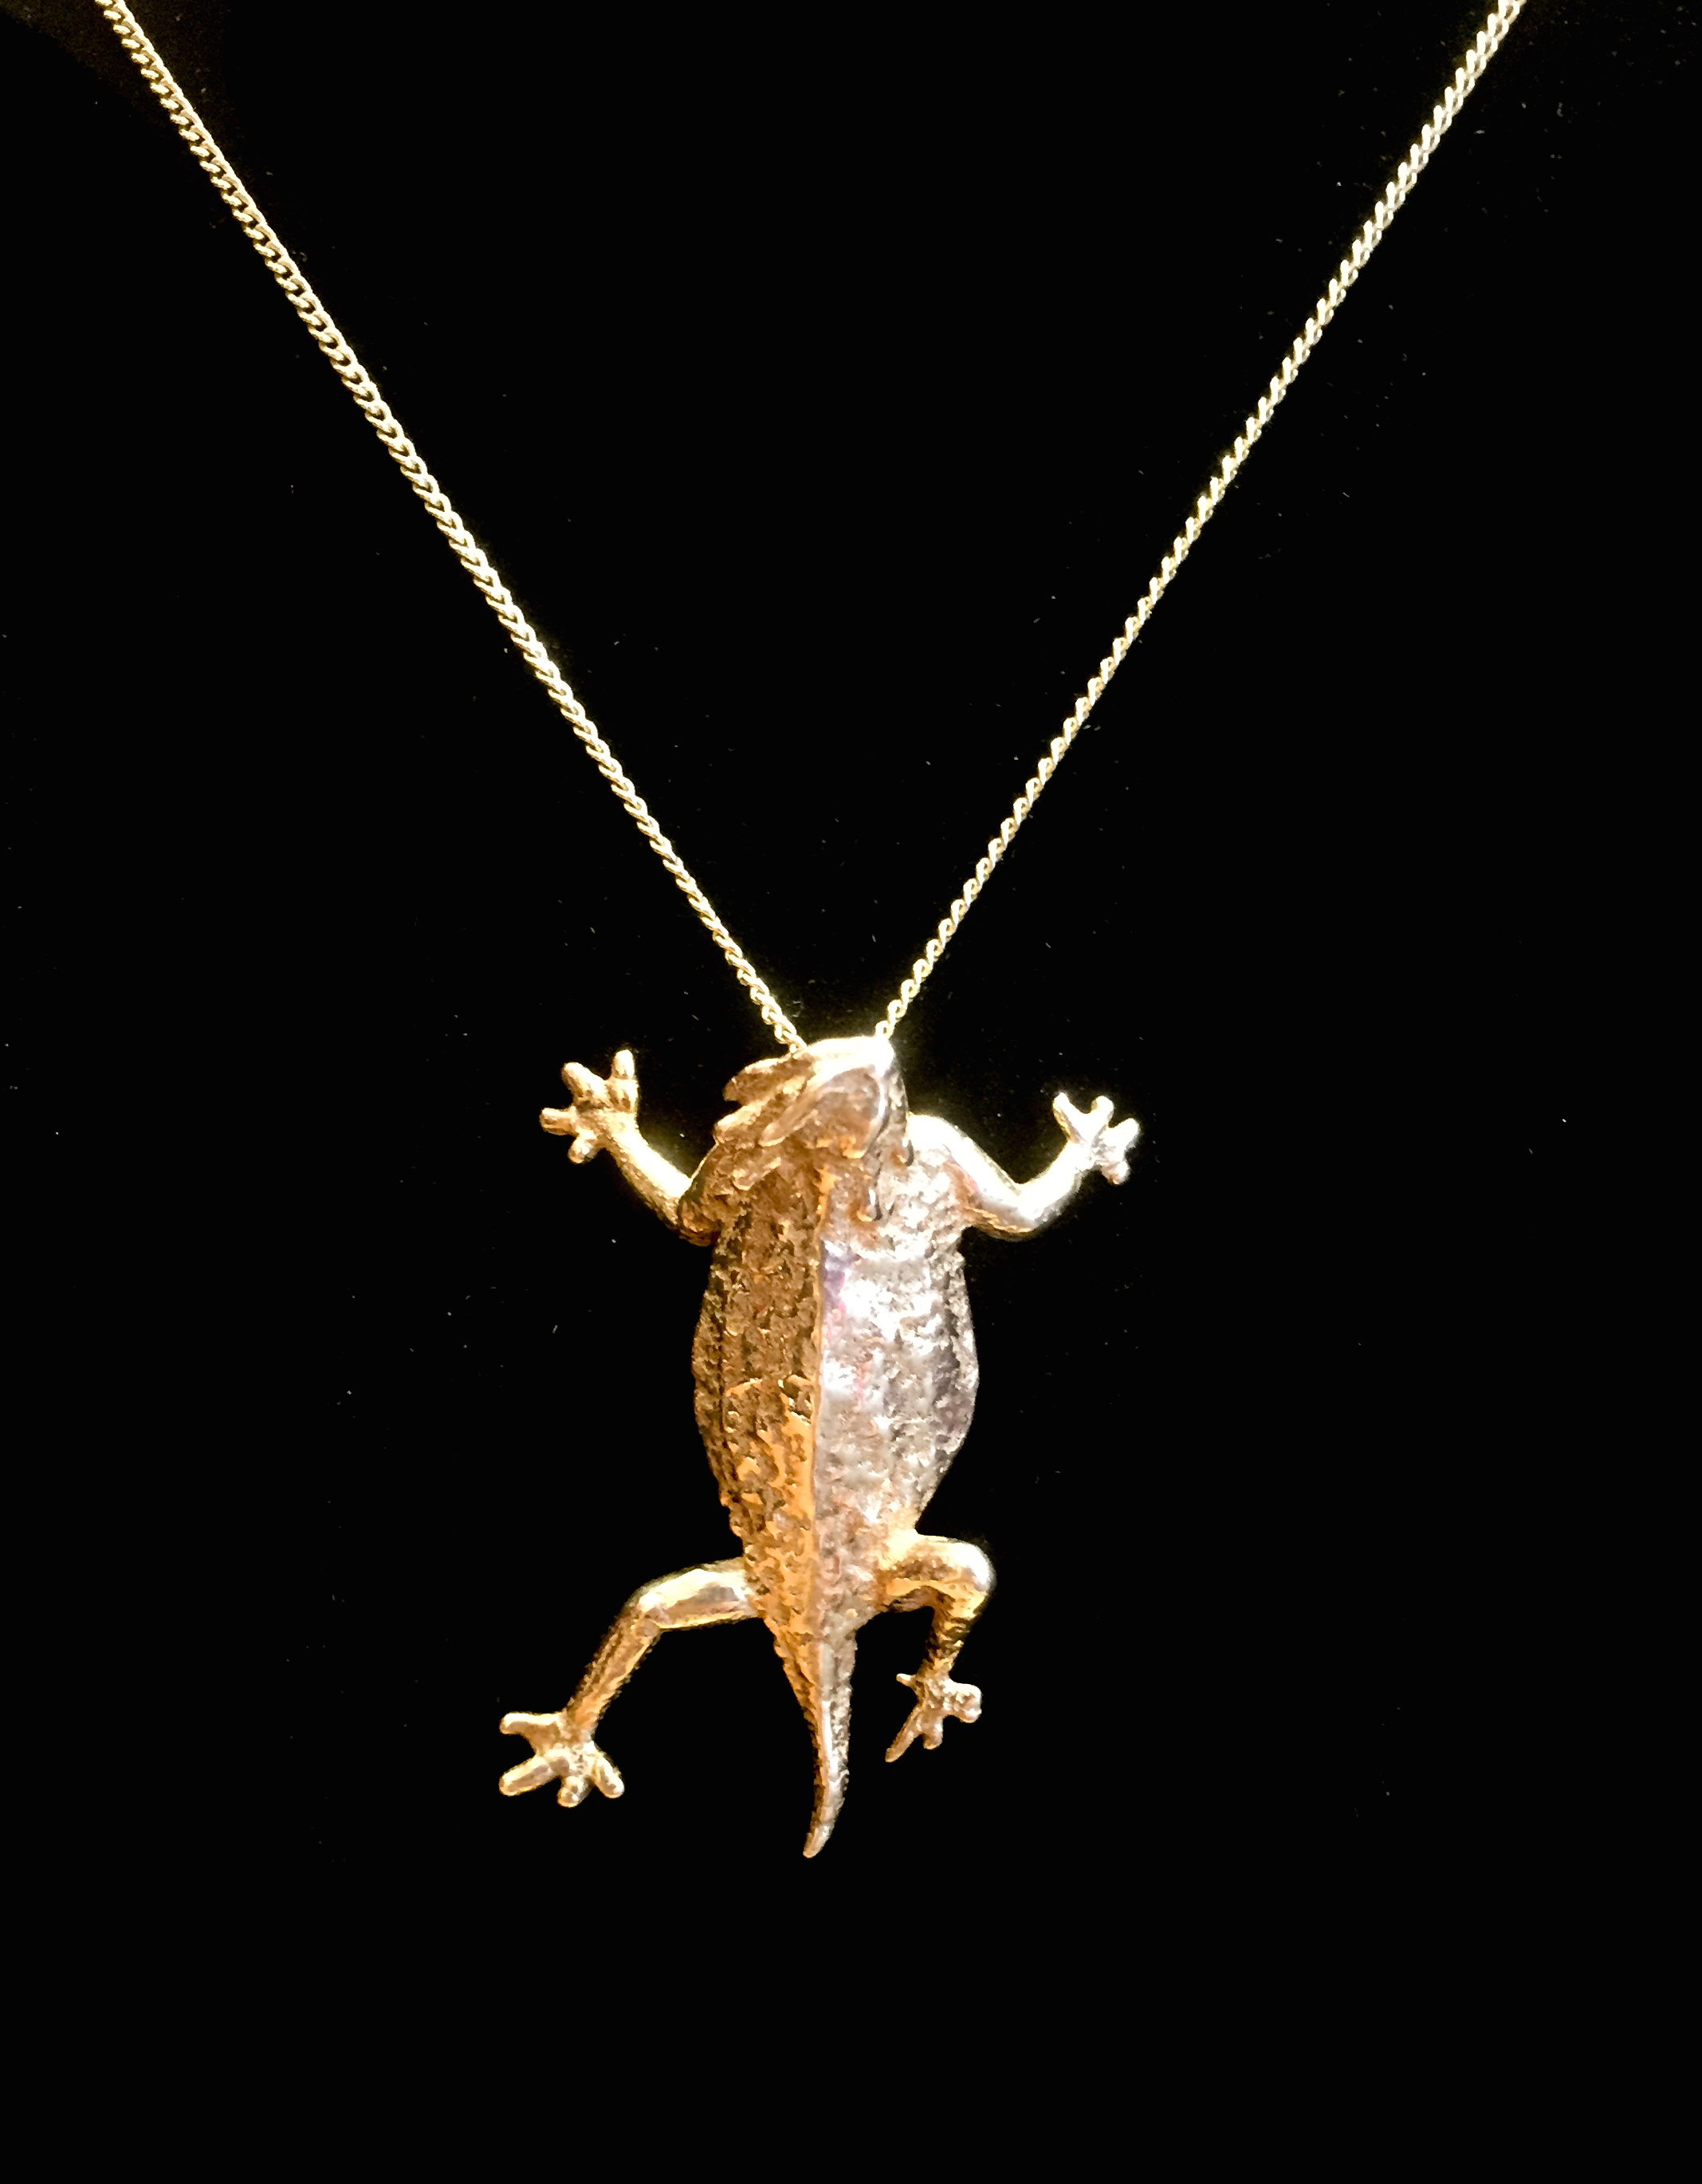 Horned Toad Pendant- ... by  Reagan Word - Masterpiece Online